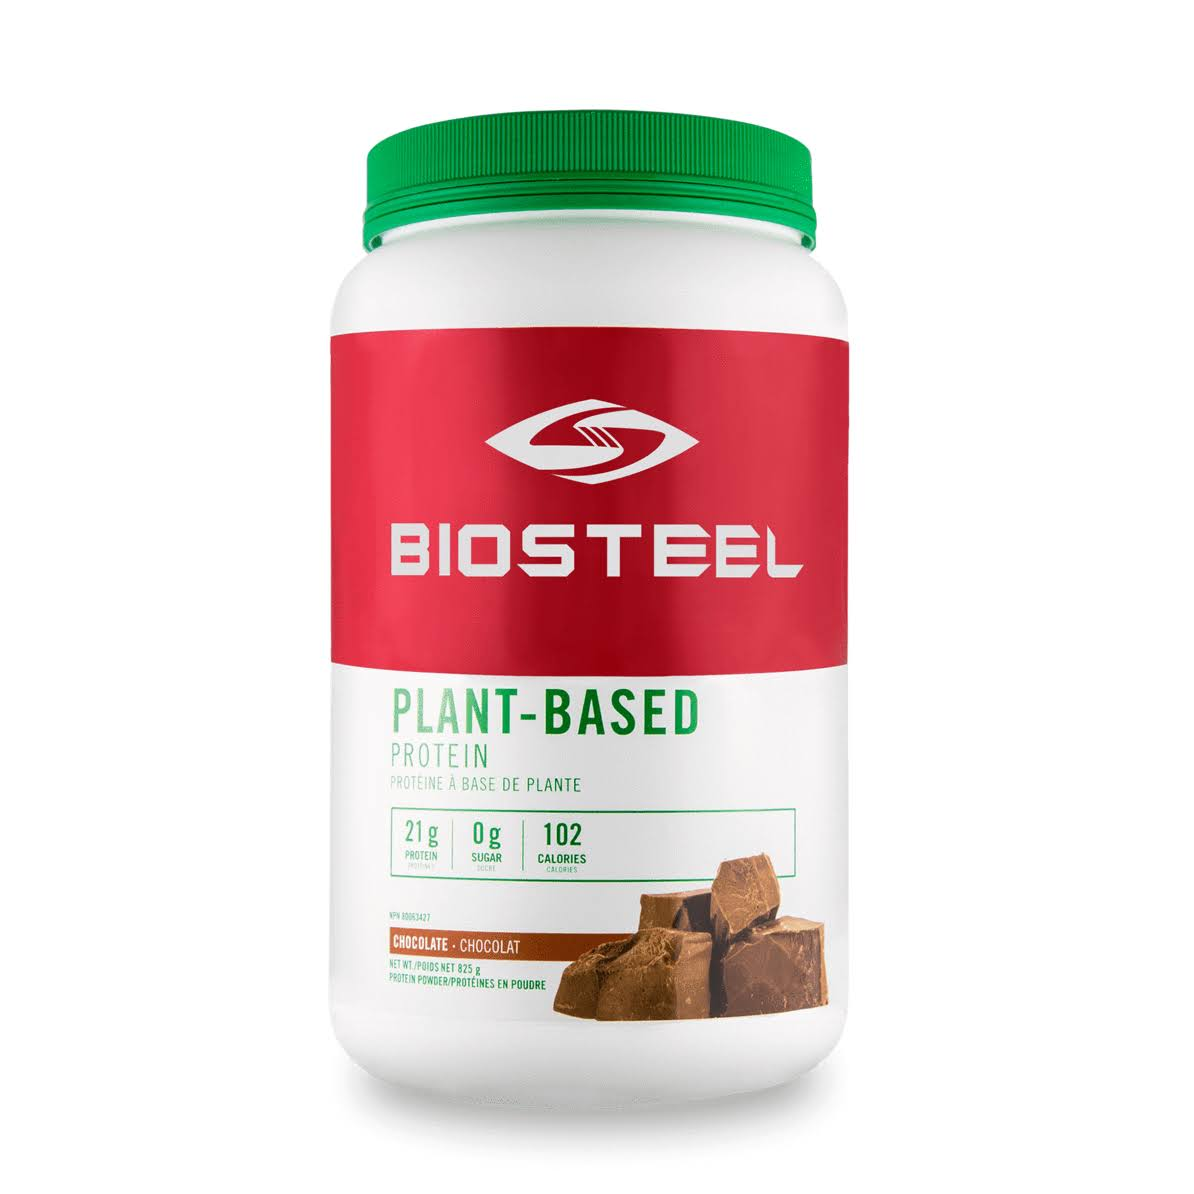 Biosteel-CA Plant-Based Protein / Chocolate Chocolate / 825G